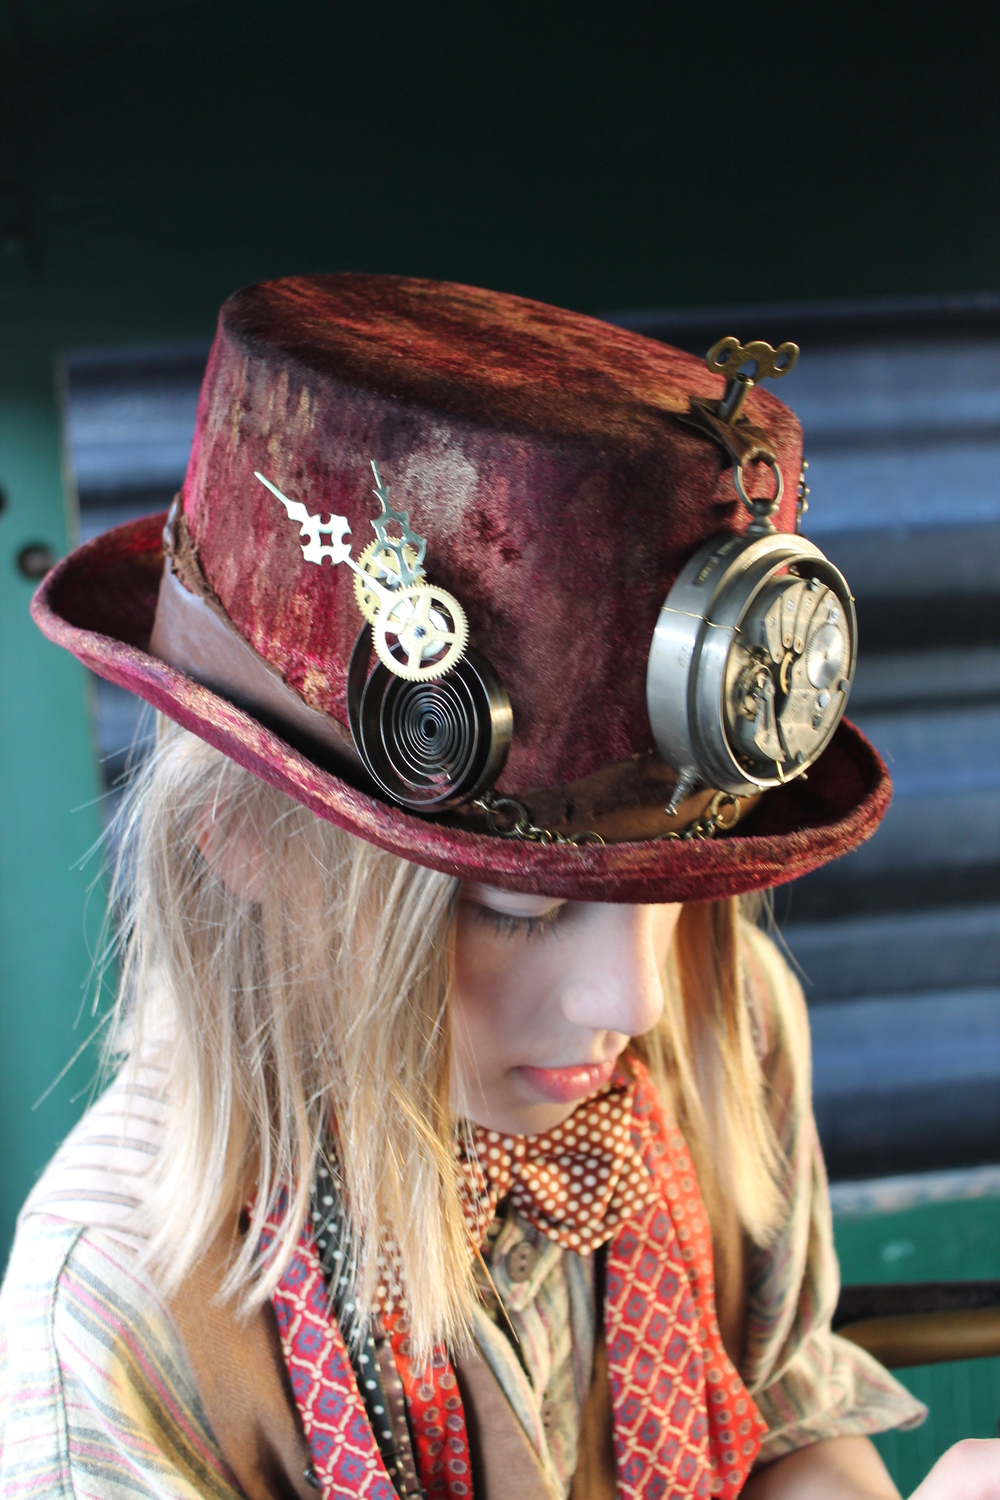 Hand-painted Velvet Clockwork Top Hat